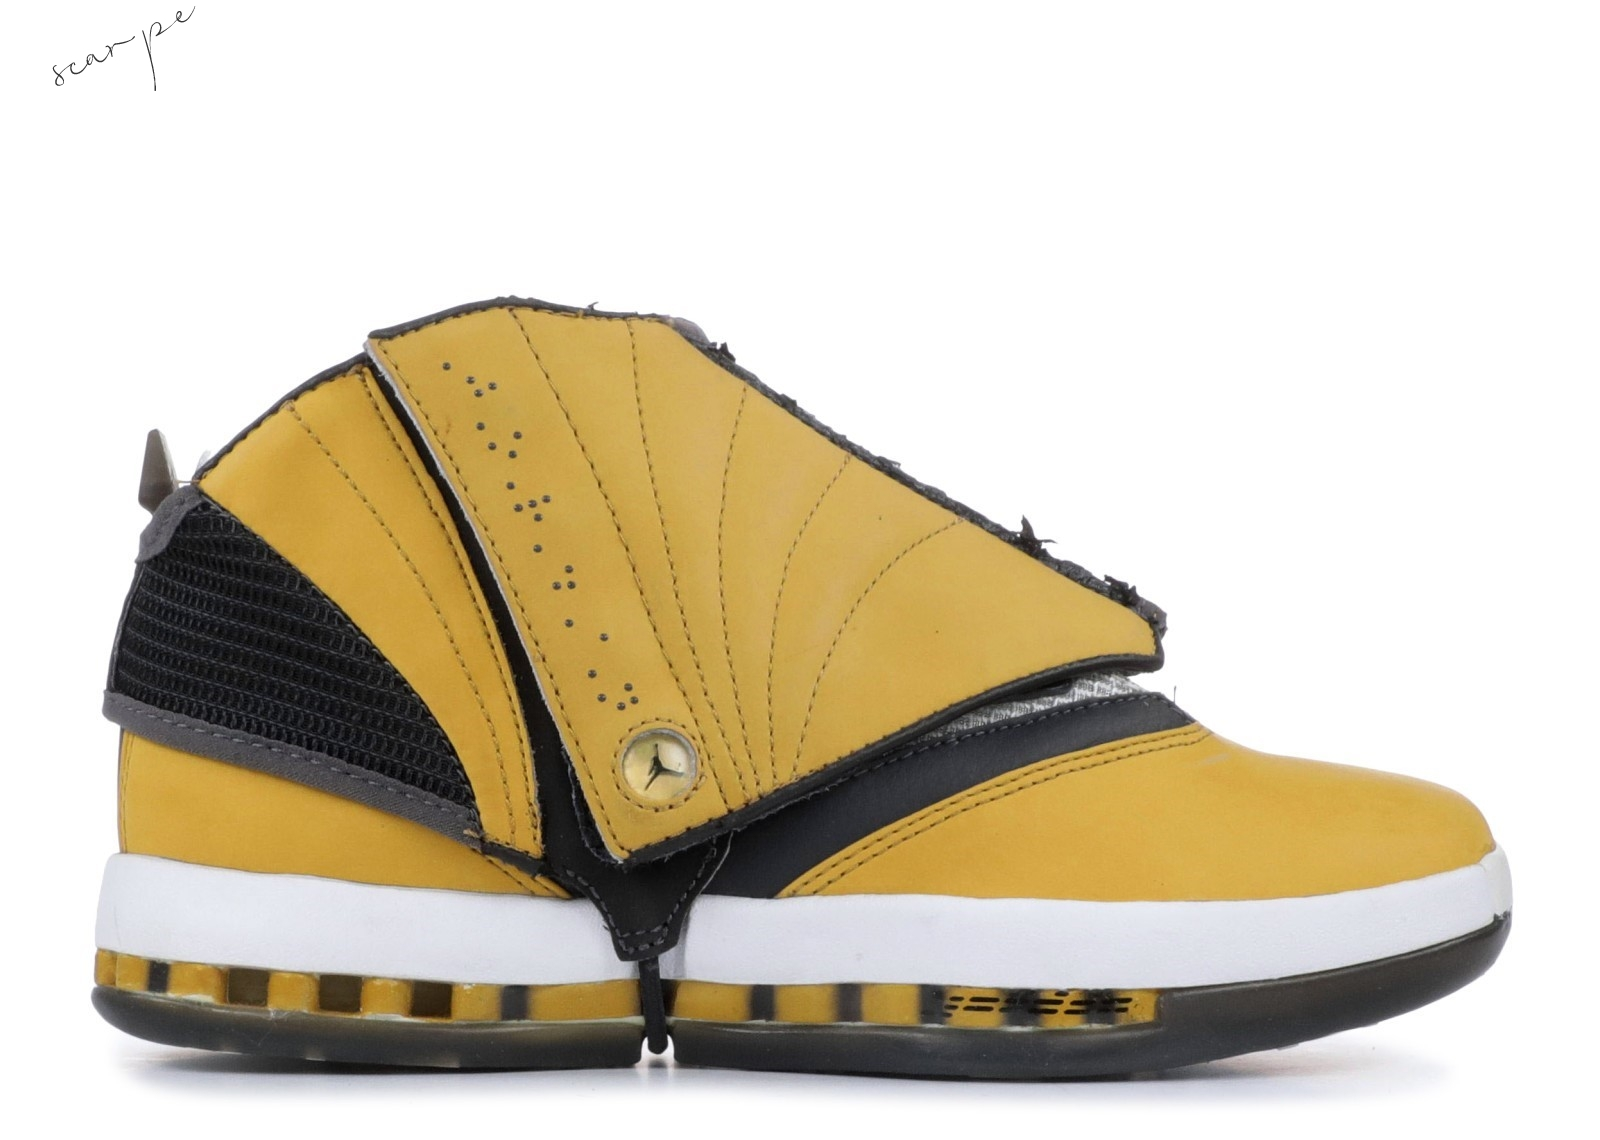 Vendite Air Jordan 16 + Q Gs Marrone (834030-701) Scarpe Online